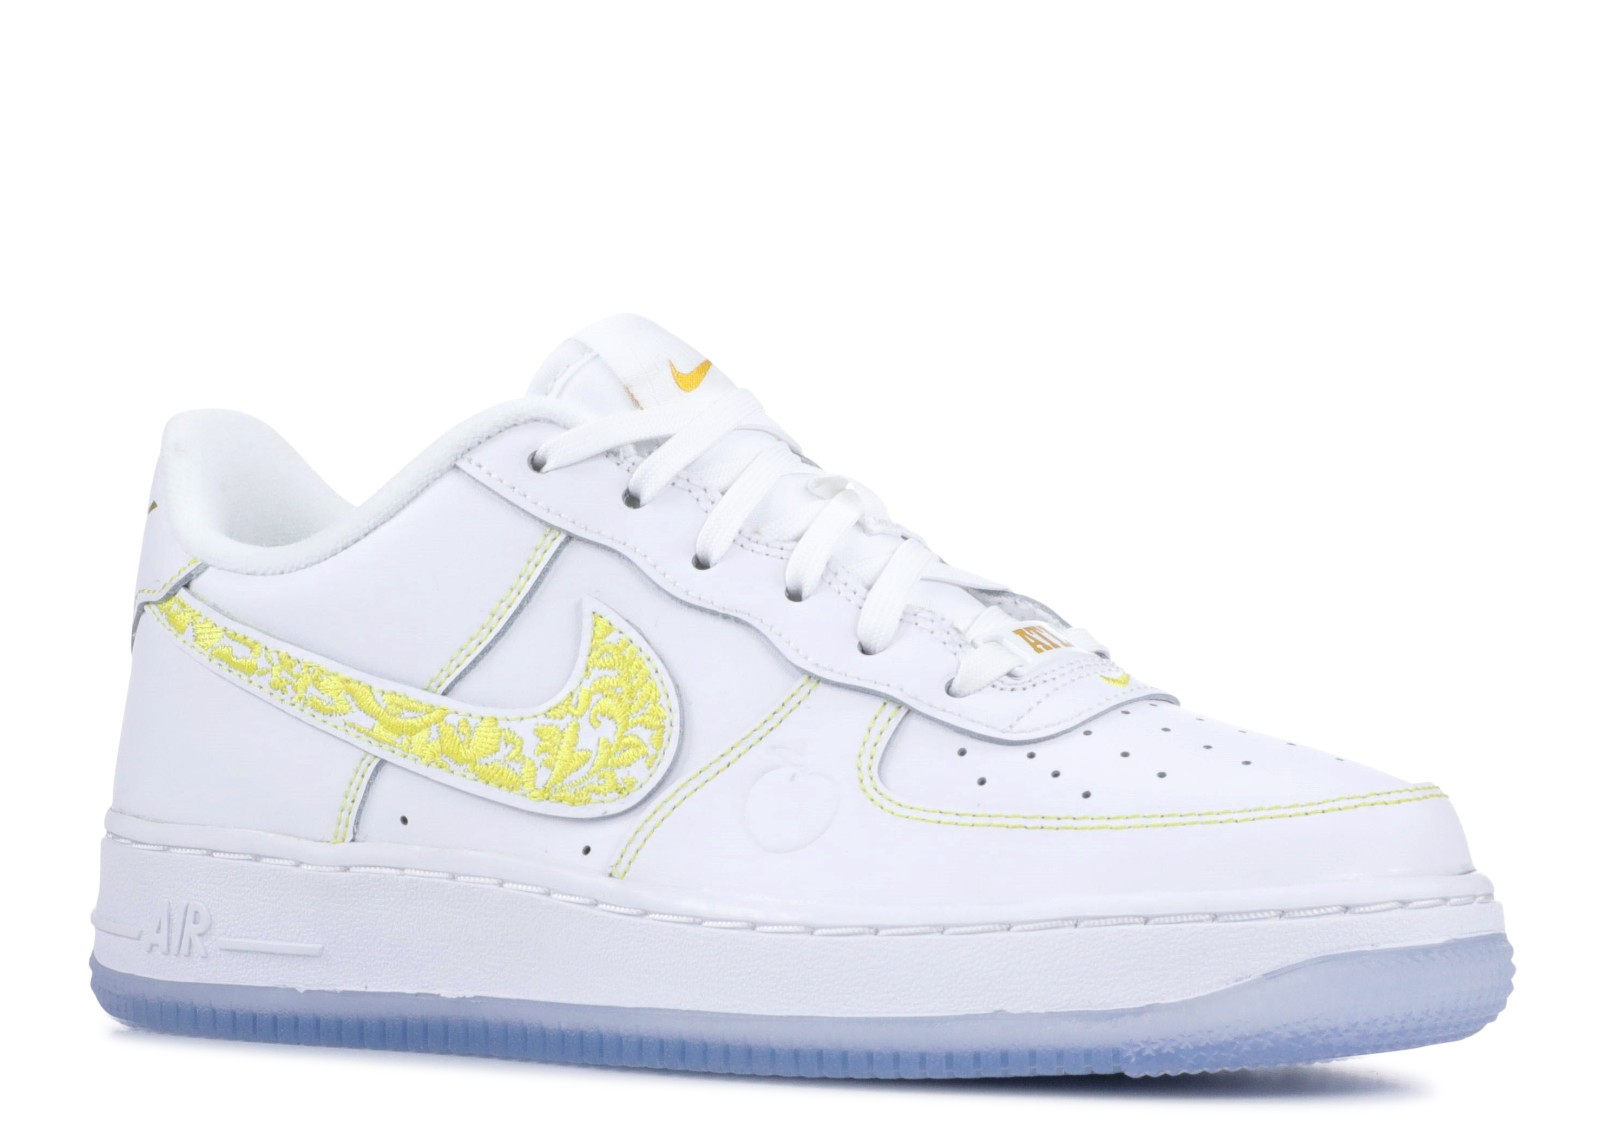 Nike Air Force 1 LV8 GS ATL (BV4341 100) Kid's Available